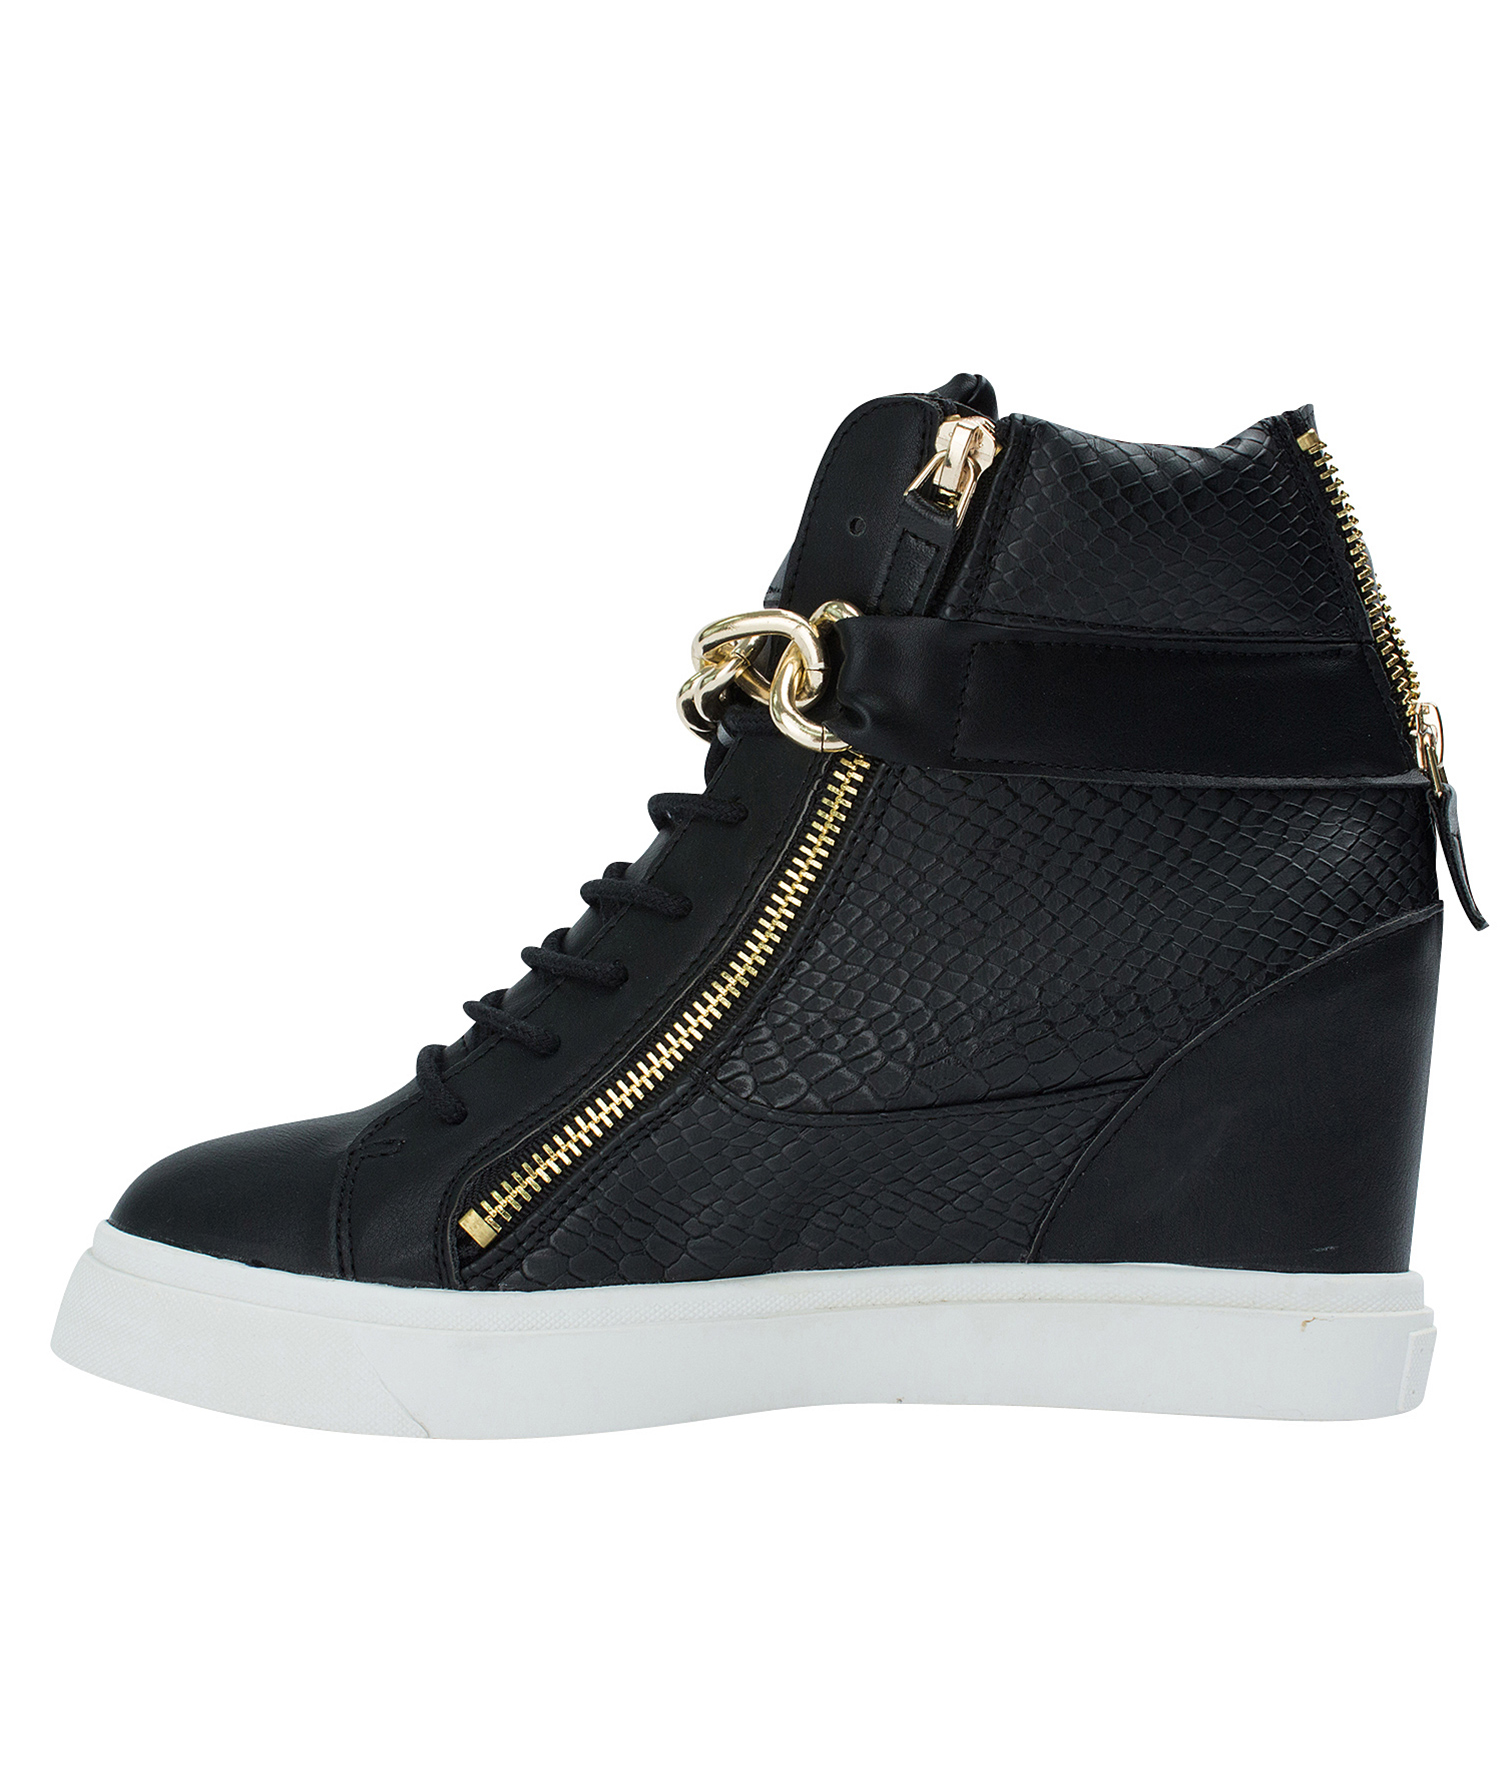 Buy womens gold wedge shoes cheap,up to